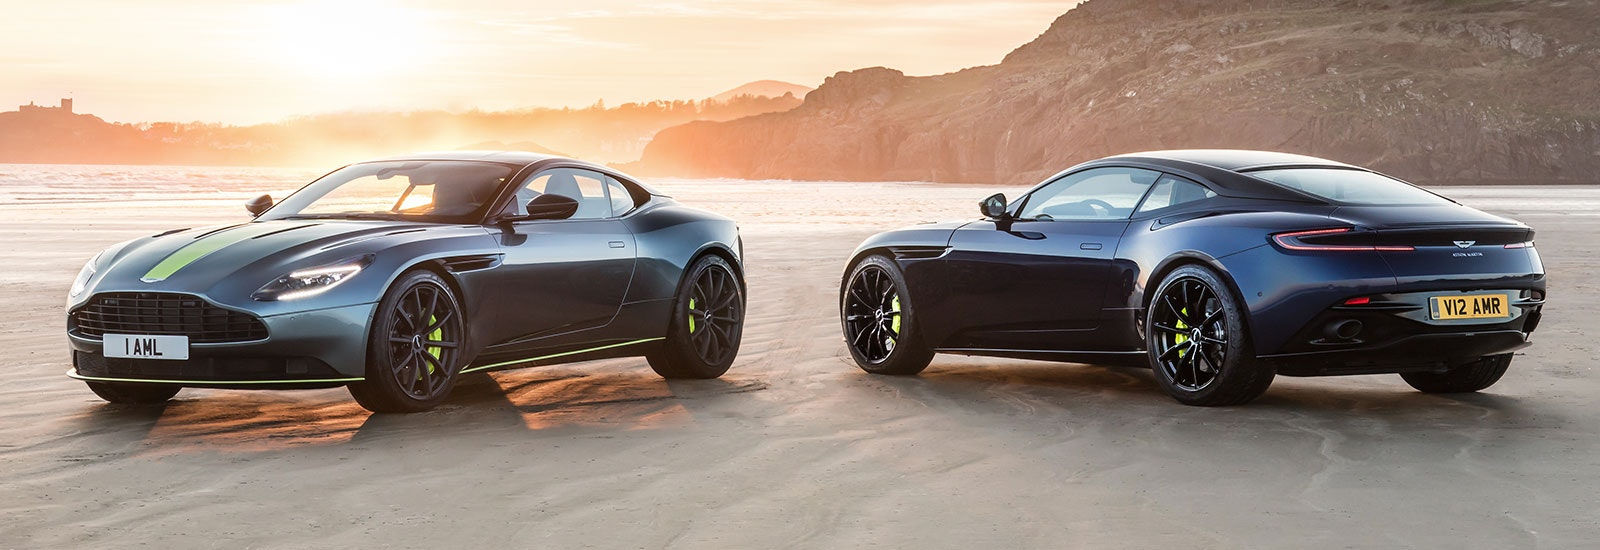 2018 aston martin db11 amr price, specs and release date | carwow